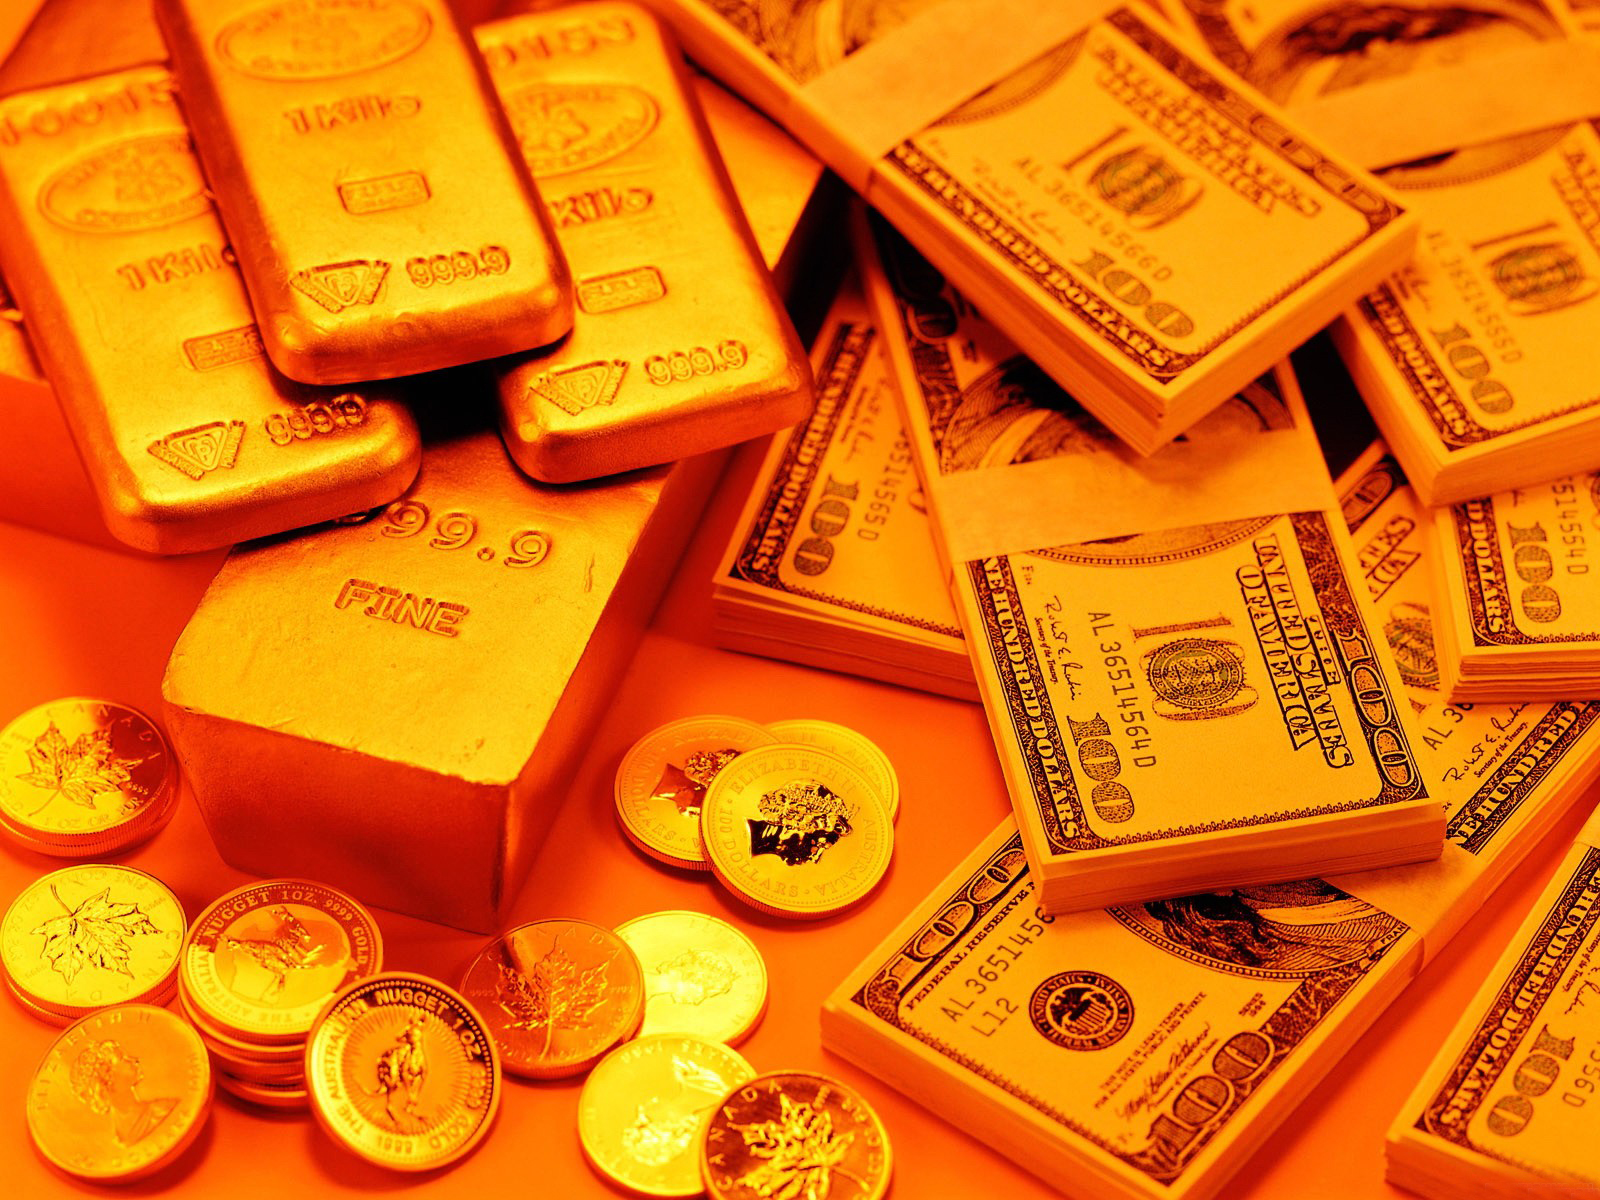 ����� ����� ����� ������� �� �������� 21-4-2014 , The price of gold today